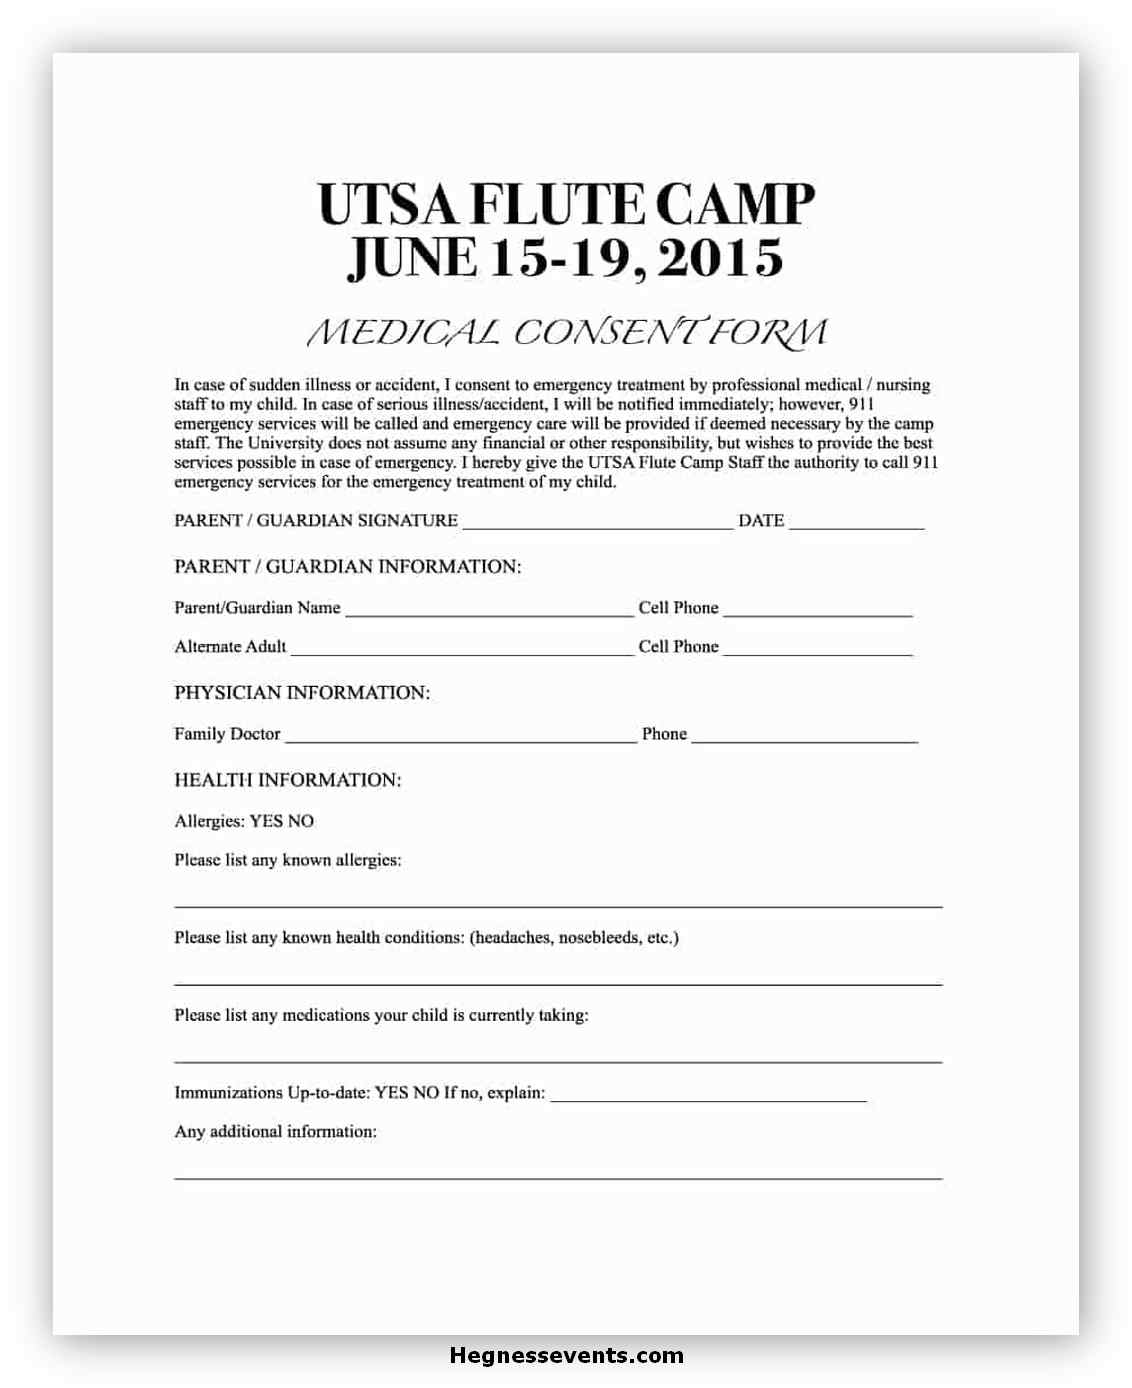 Medical Consent Form Template 05